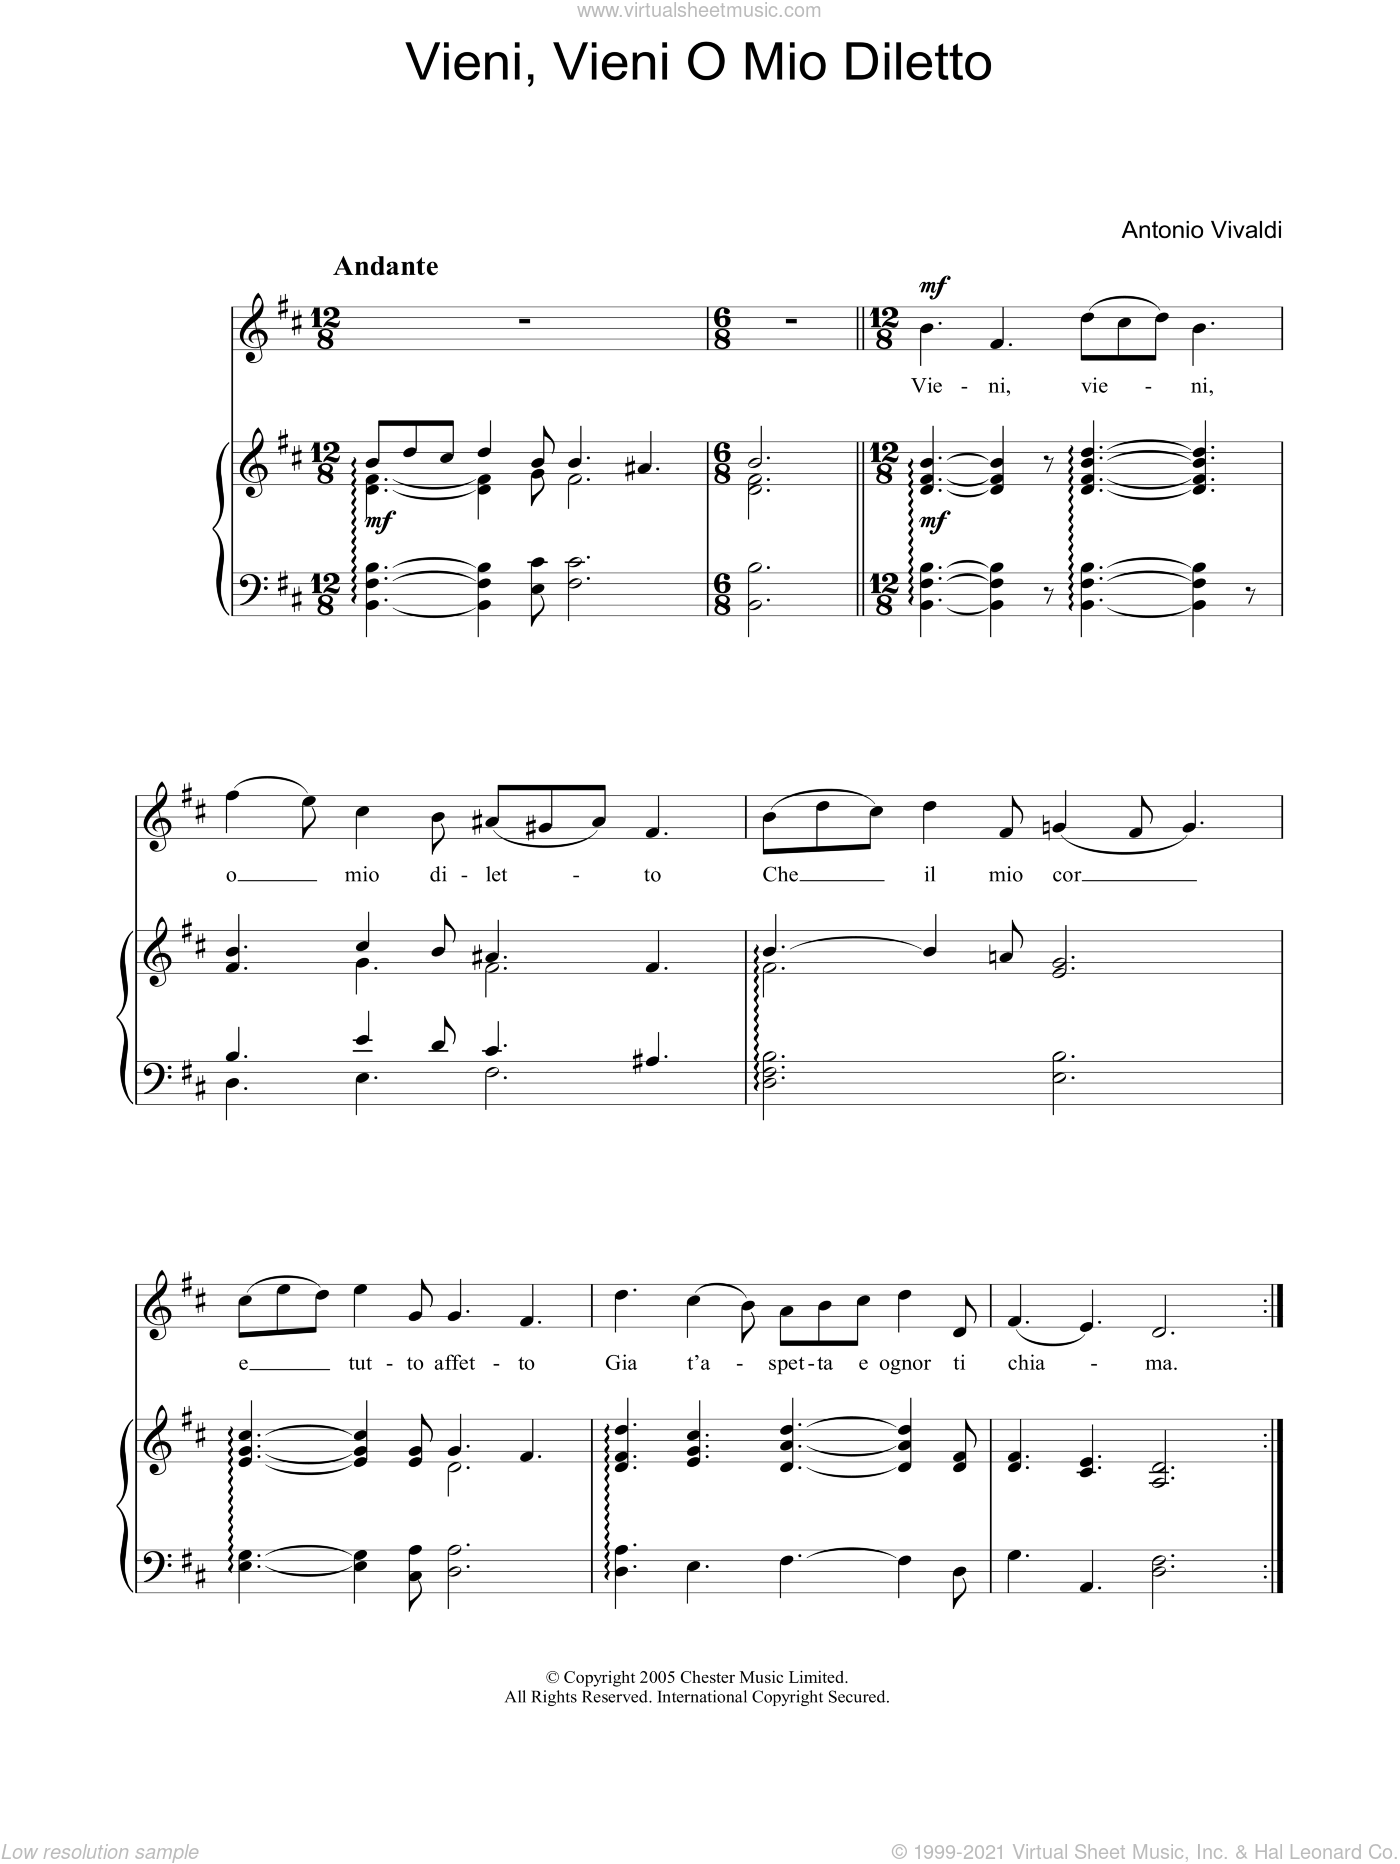 Vieni, Vieni O Mio Diletto sheet music for piano solo (chords) by Antonio Vivaldi